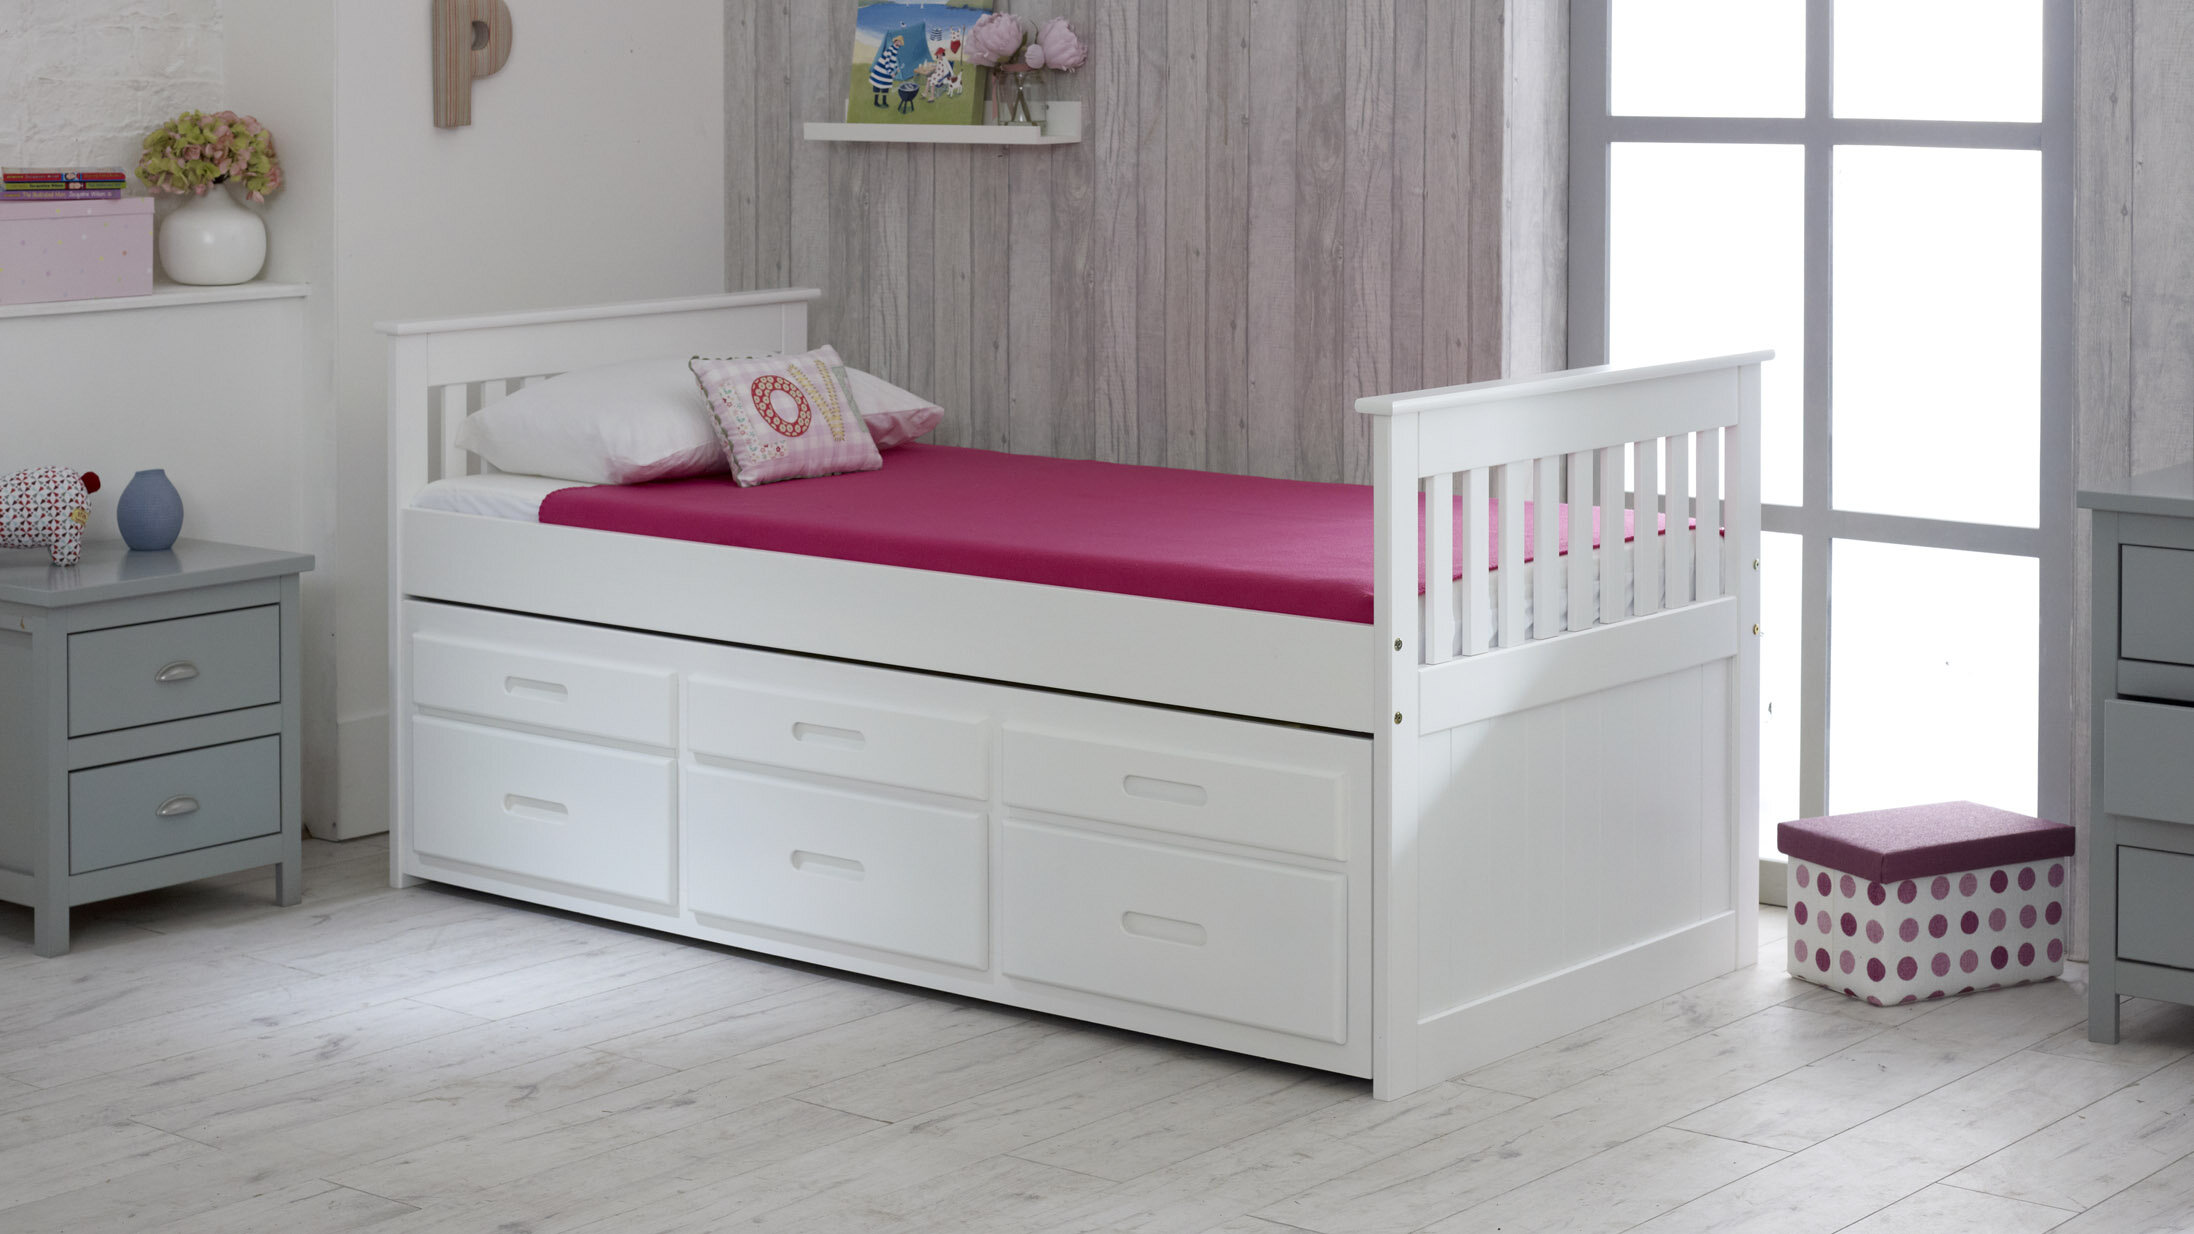 longeatonbeds bed bazzano dolly products single truffle